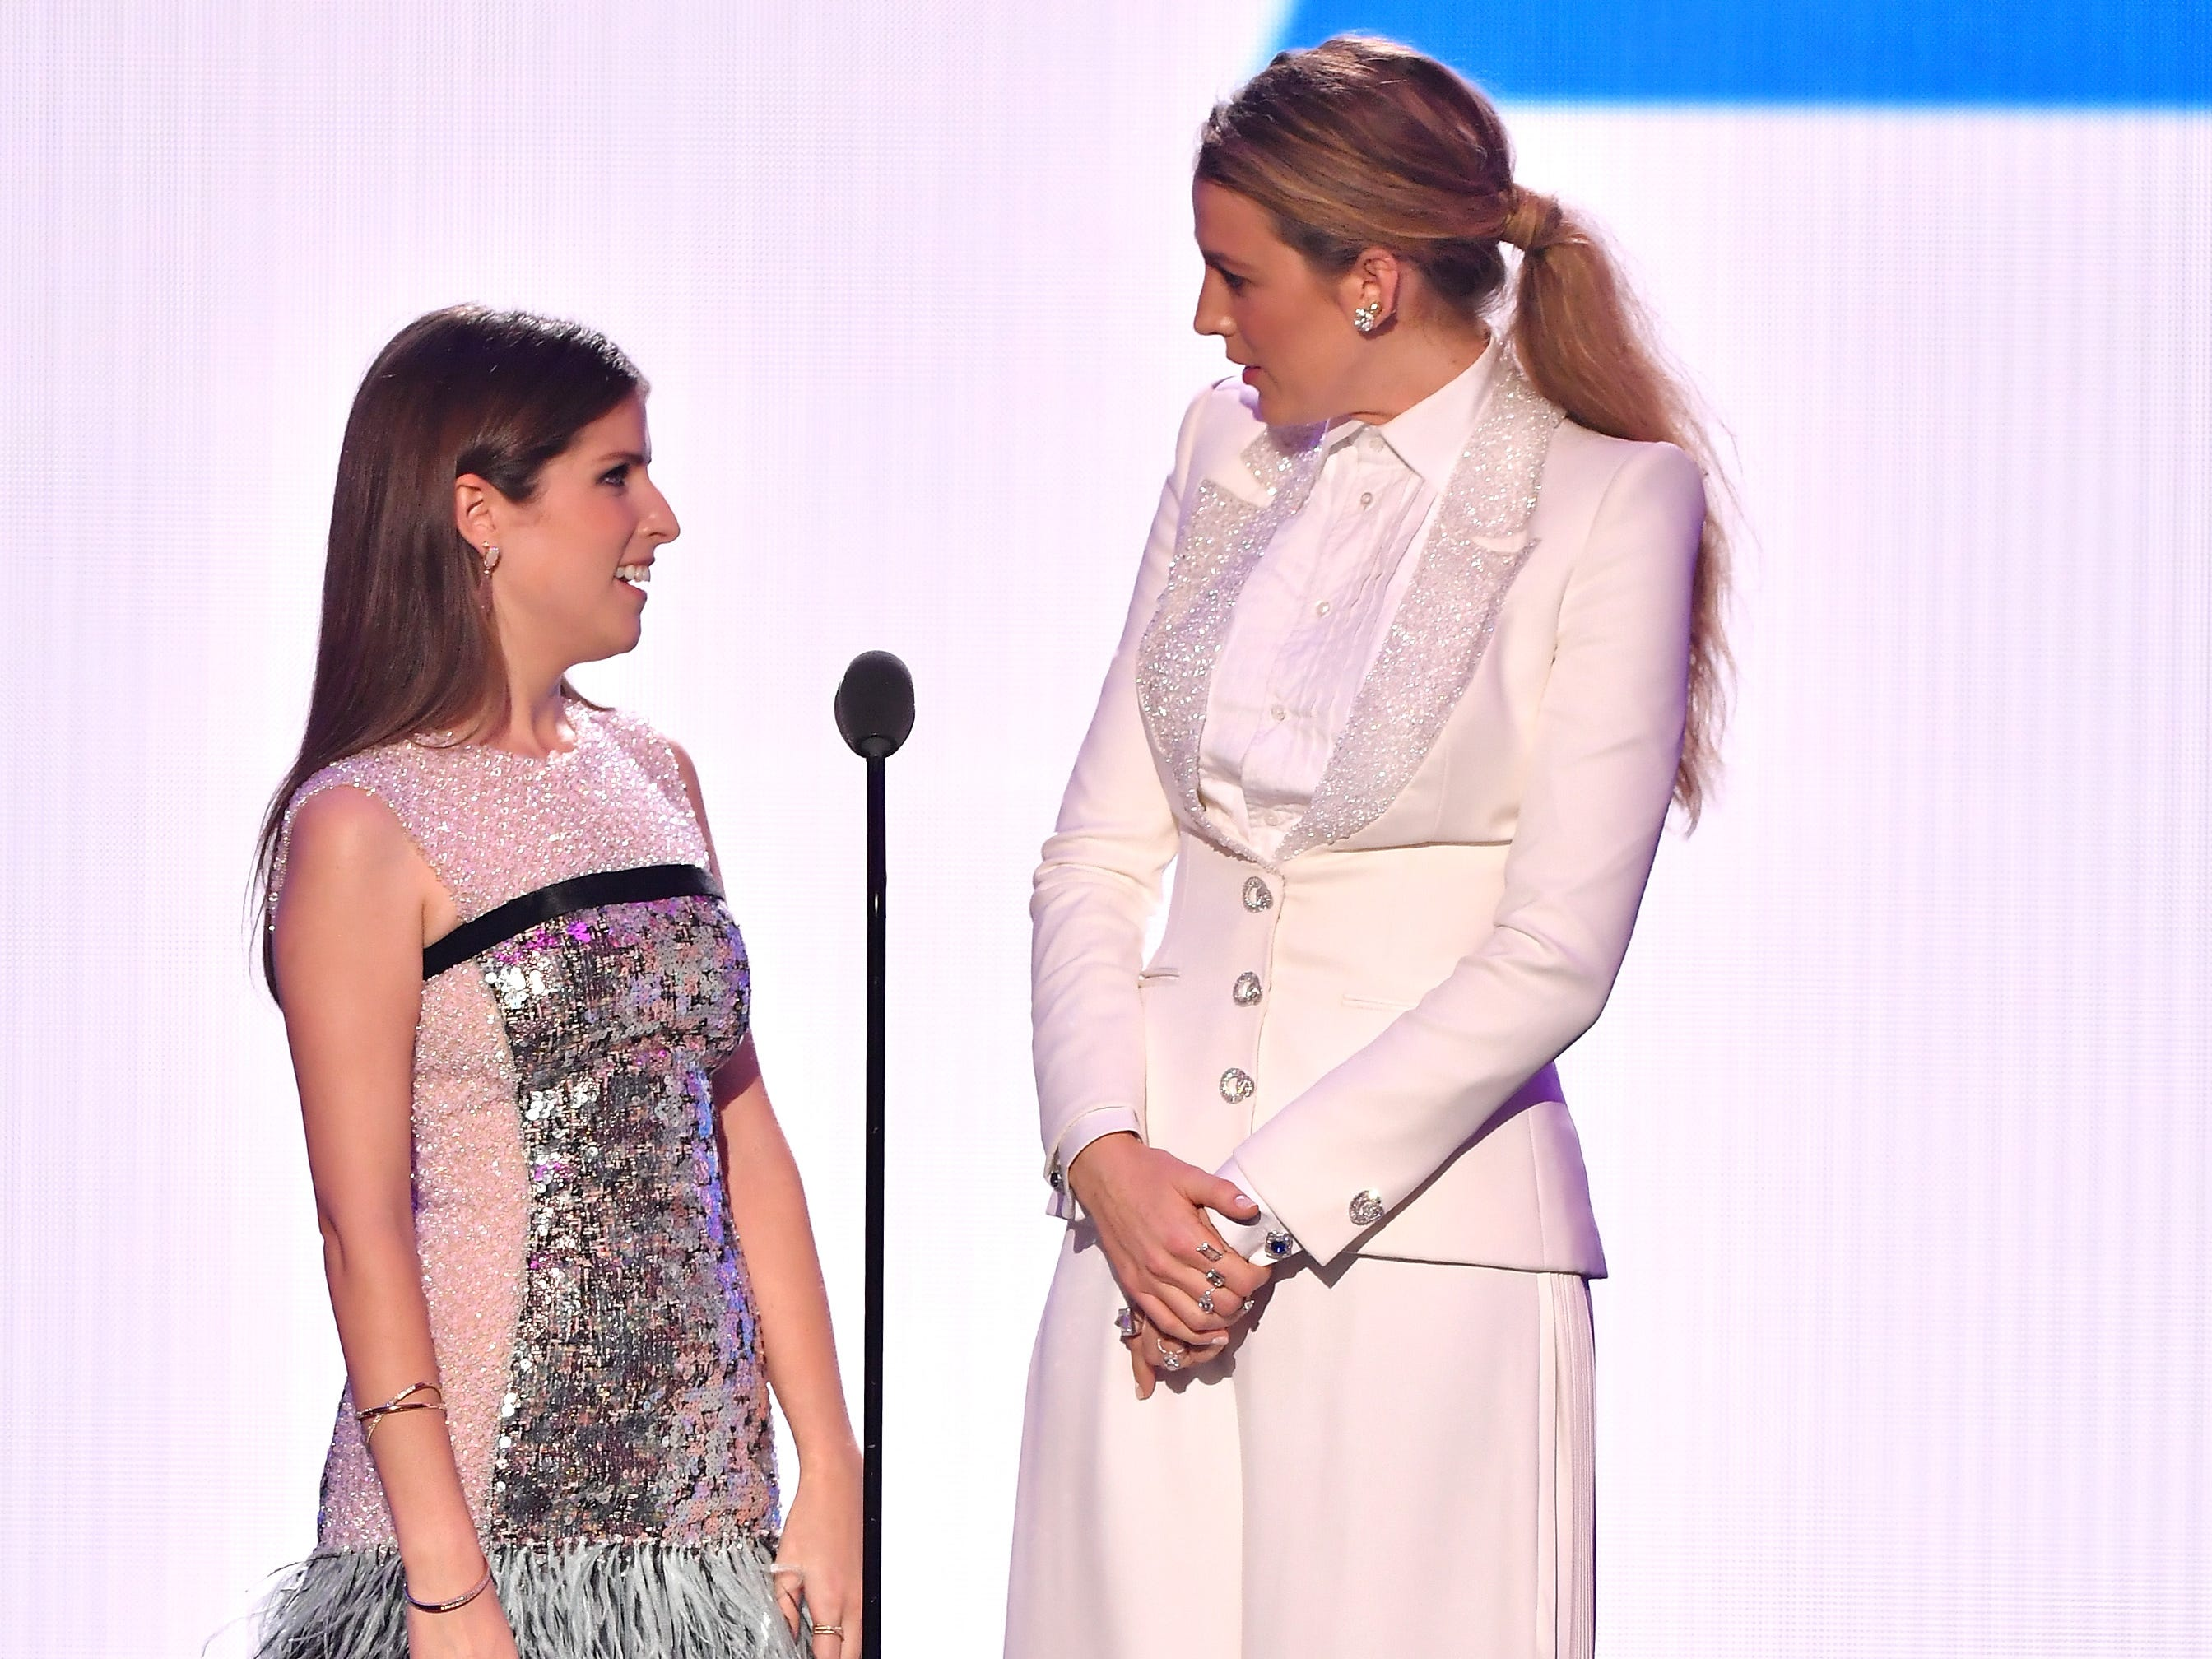 NEW YORK, NY - AUGUST 20:  Anna Kendrick and Blake Lively speak onstage during the 2018 MTV Video Music Awards at Radio City Music Hall on August 20, 2018 in New York City.  (Photo by Michael Loccisano/Getty Images for MTV) ORG XMIT: 775210297 ORIG FILE ID: 1020326098